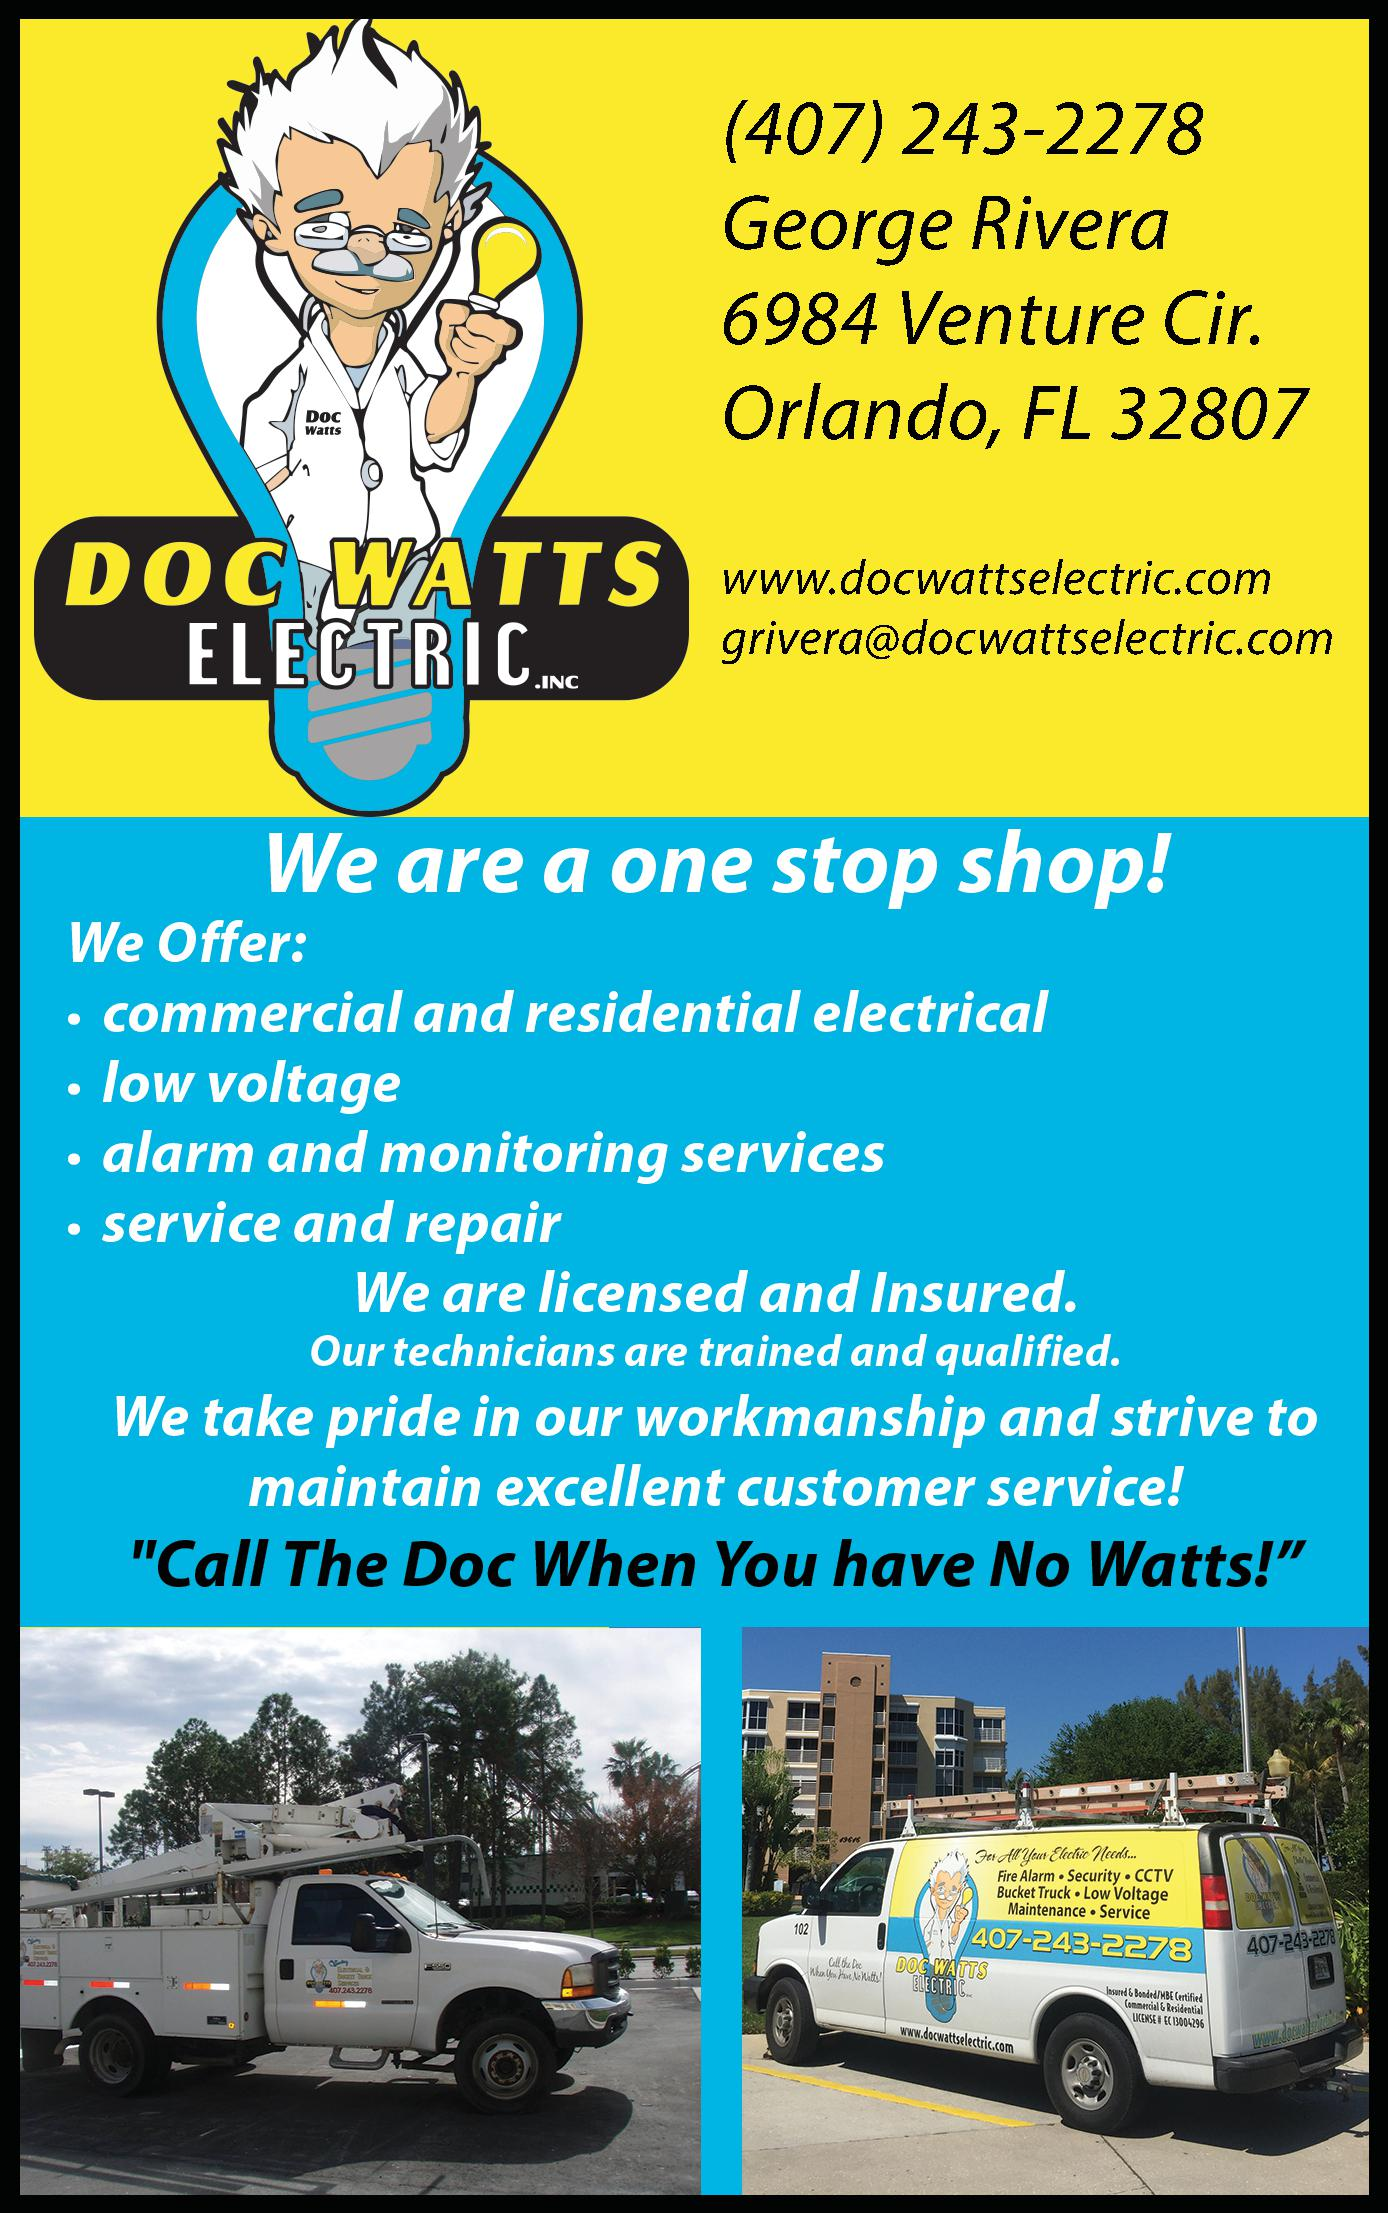 Doc Watts Electric, Inc.